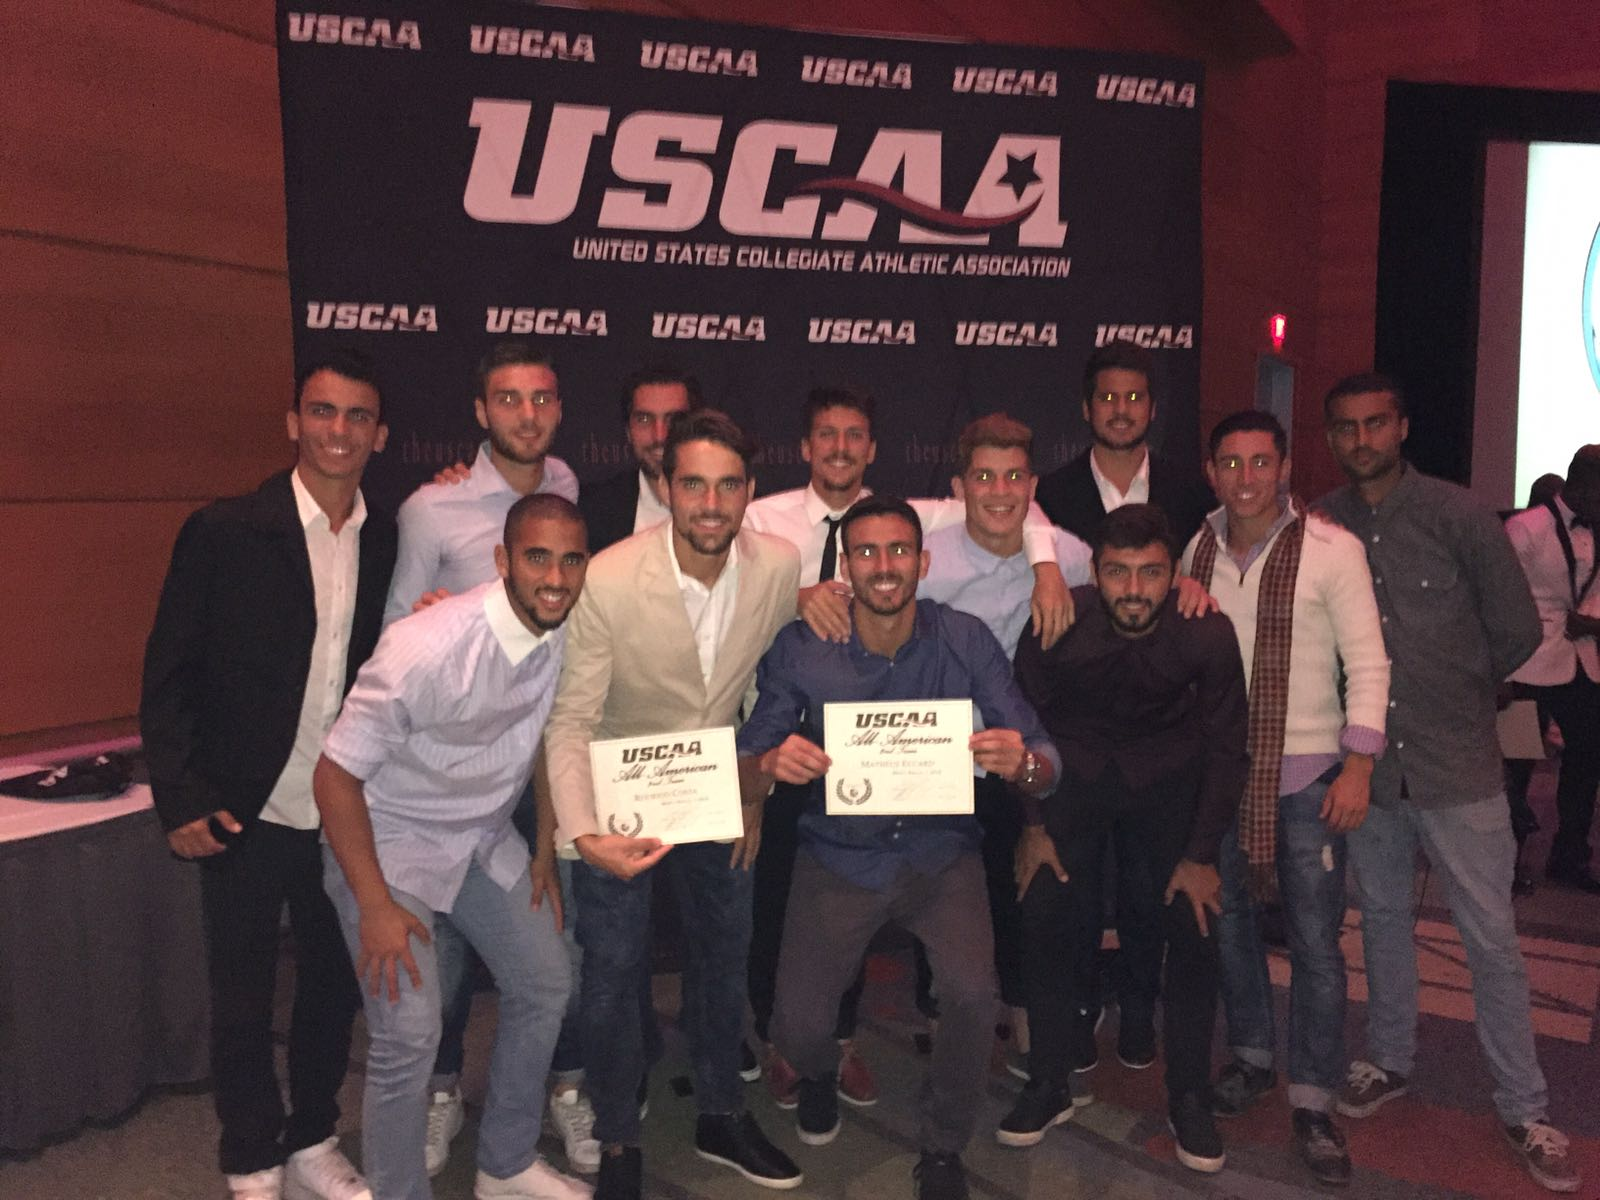 Mens soccer All American Award Ceremony picture